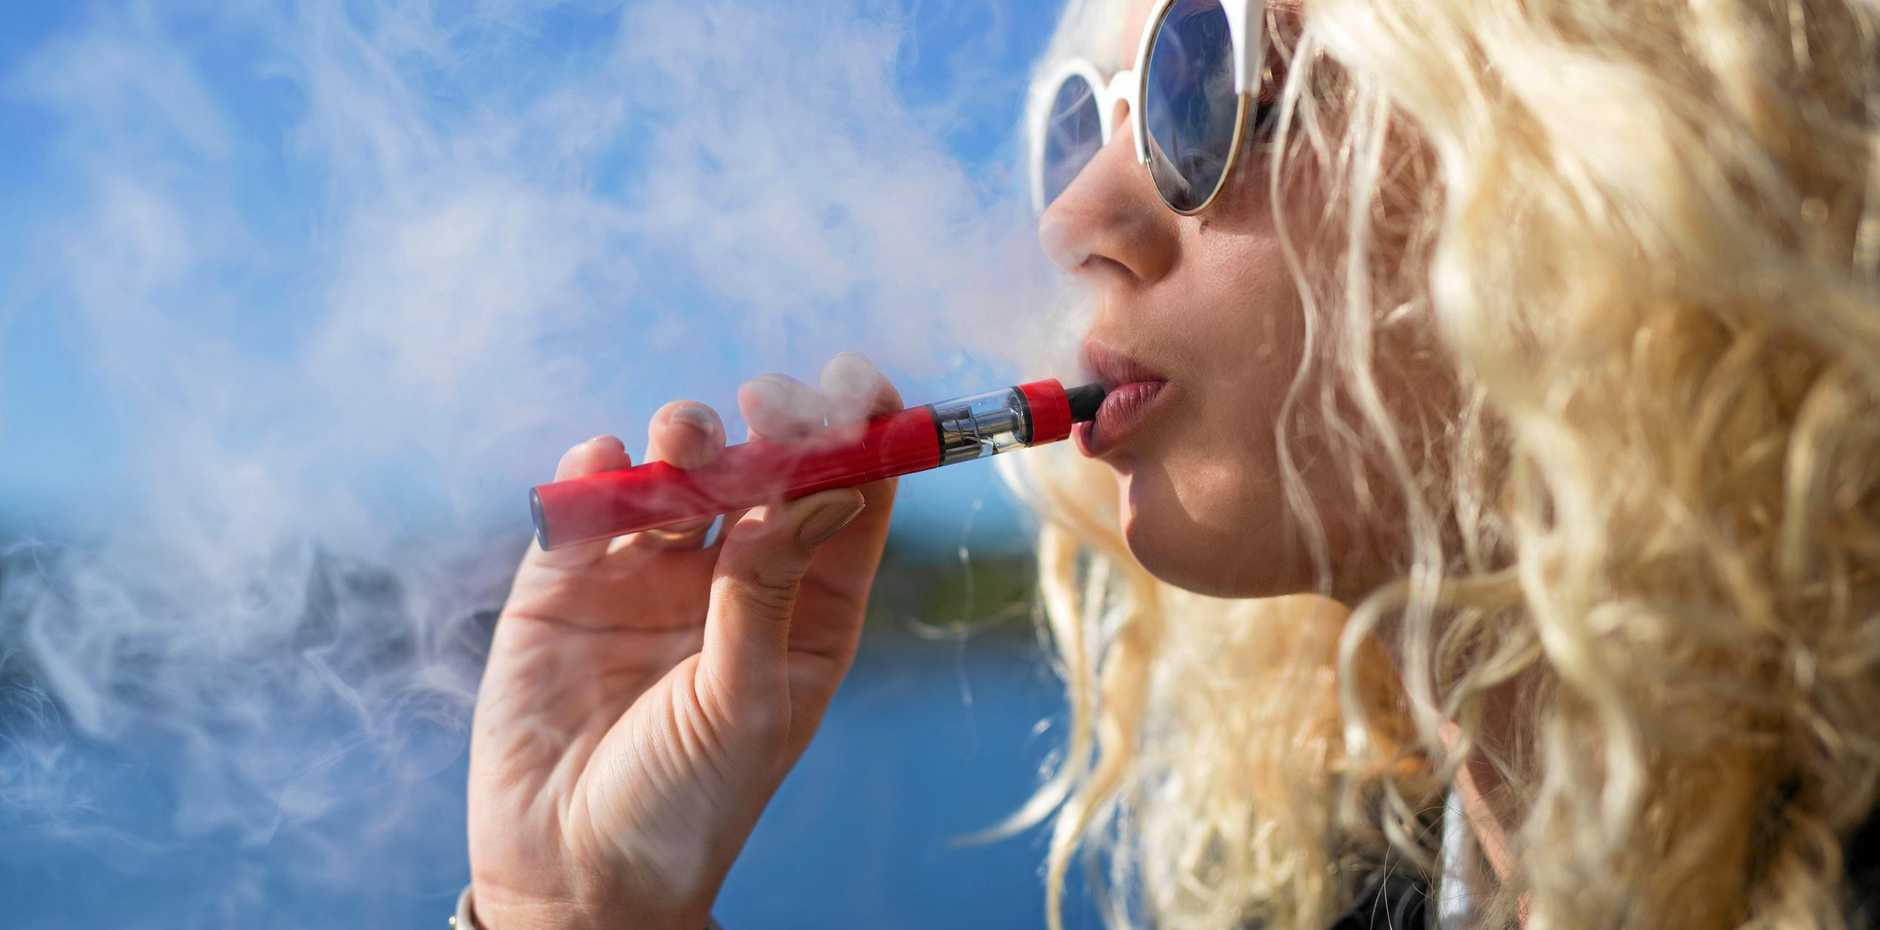 VAPING BAN: New laws to bring e-cigarettes in line with tobacco will come into effect in July, making it illegal to smoke in public places.